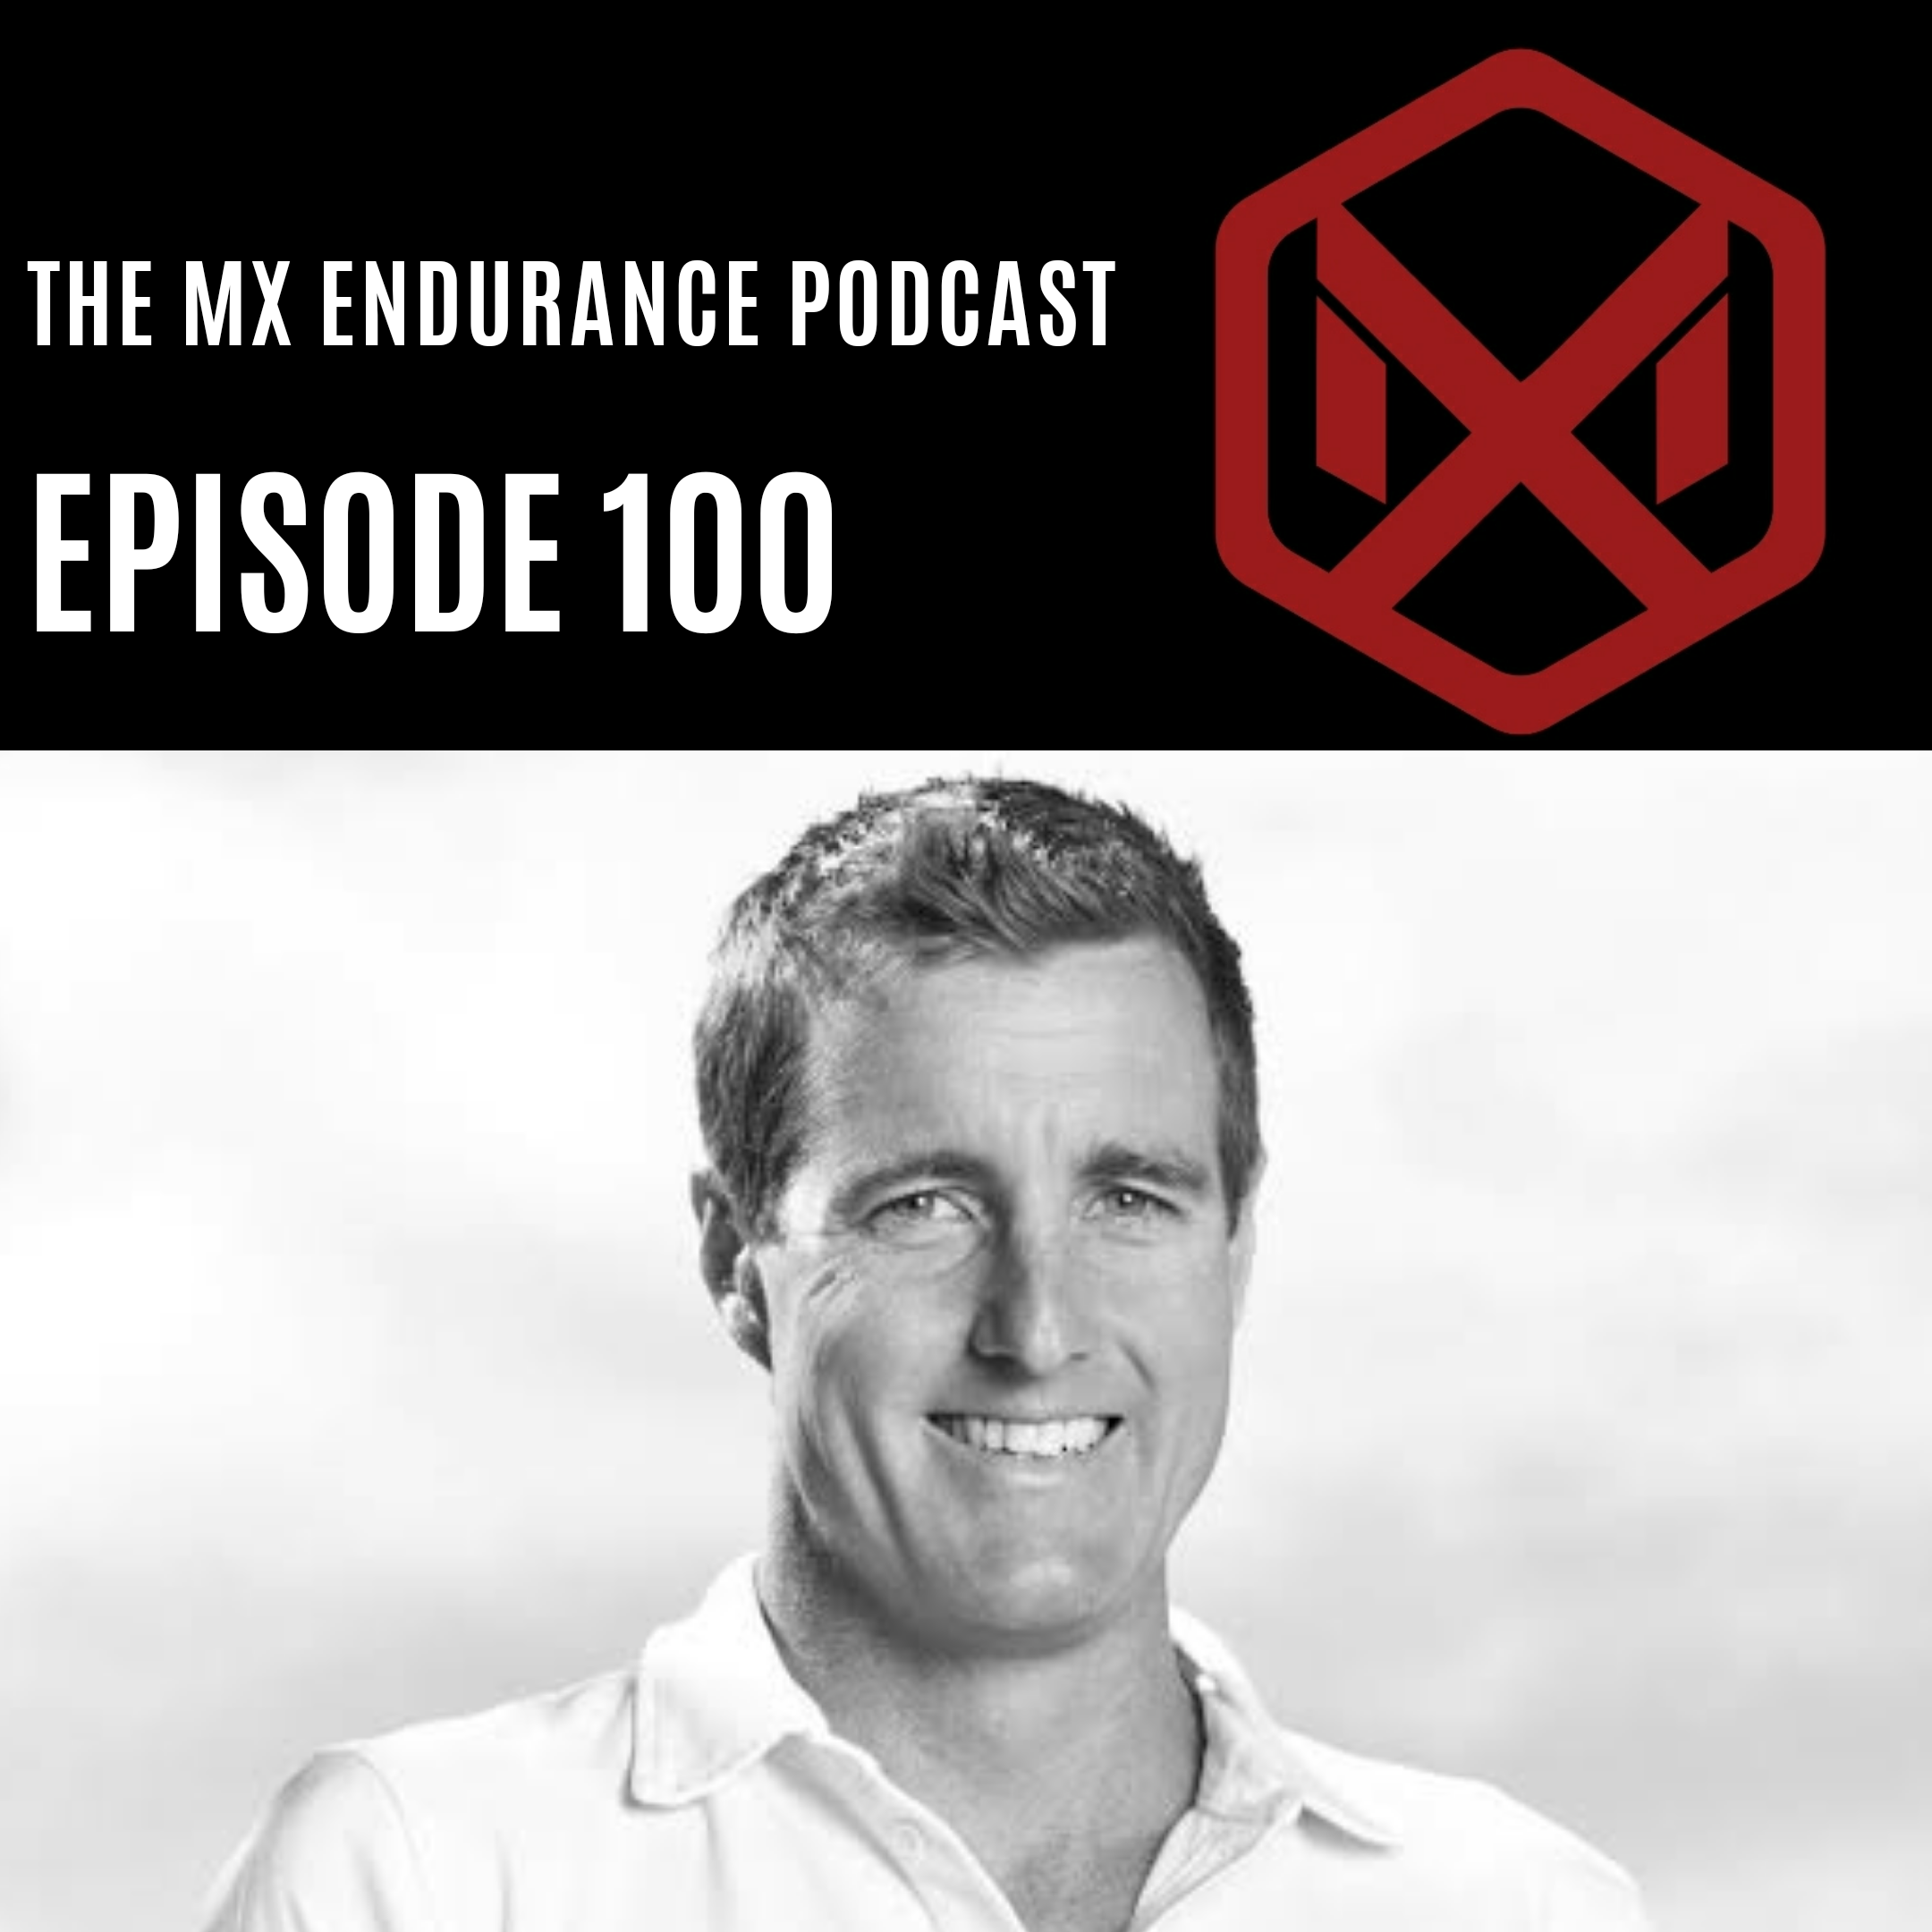 #100 - The Greatest Male Triathletes of All Time with Greg Bennett and Chris McCormack